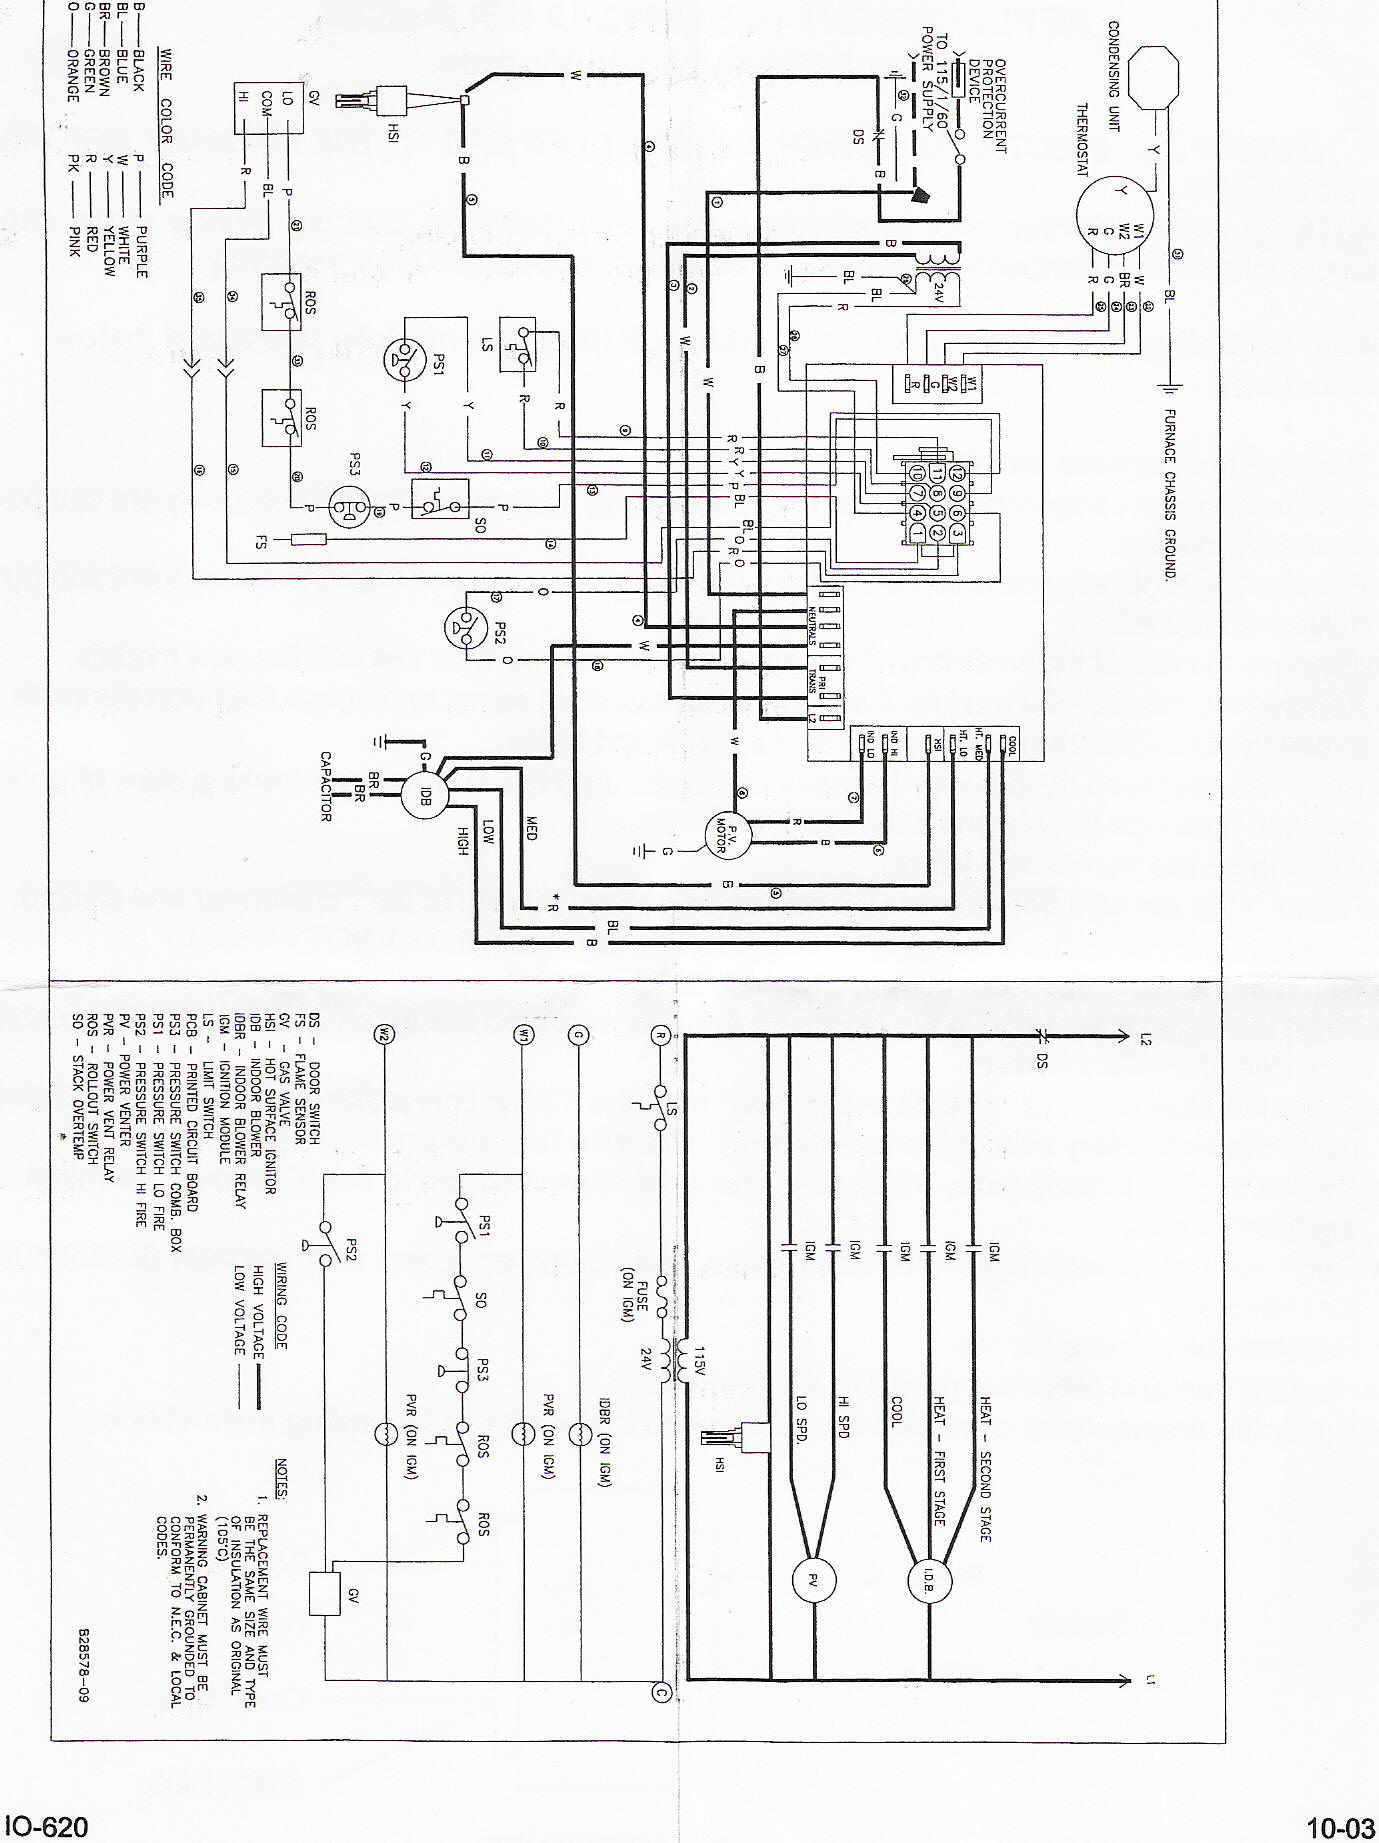 hight resolution of american standard air handler wiring diagram for wiring diagram rh 2 14 12 jacobwinterstein com nordyne electric furnace wiring diagram goodman air handler